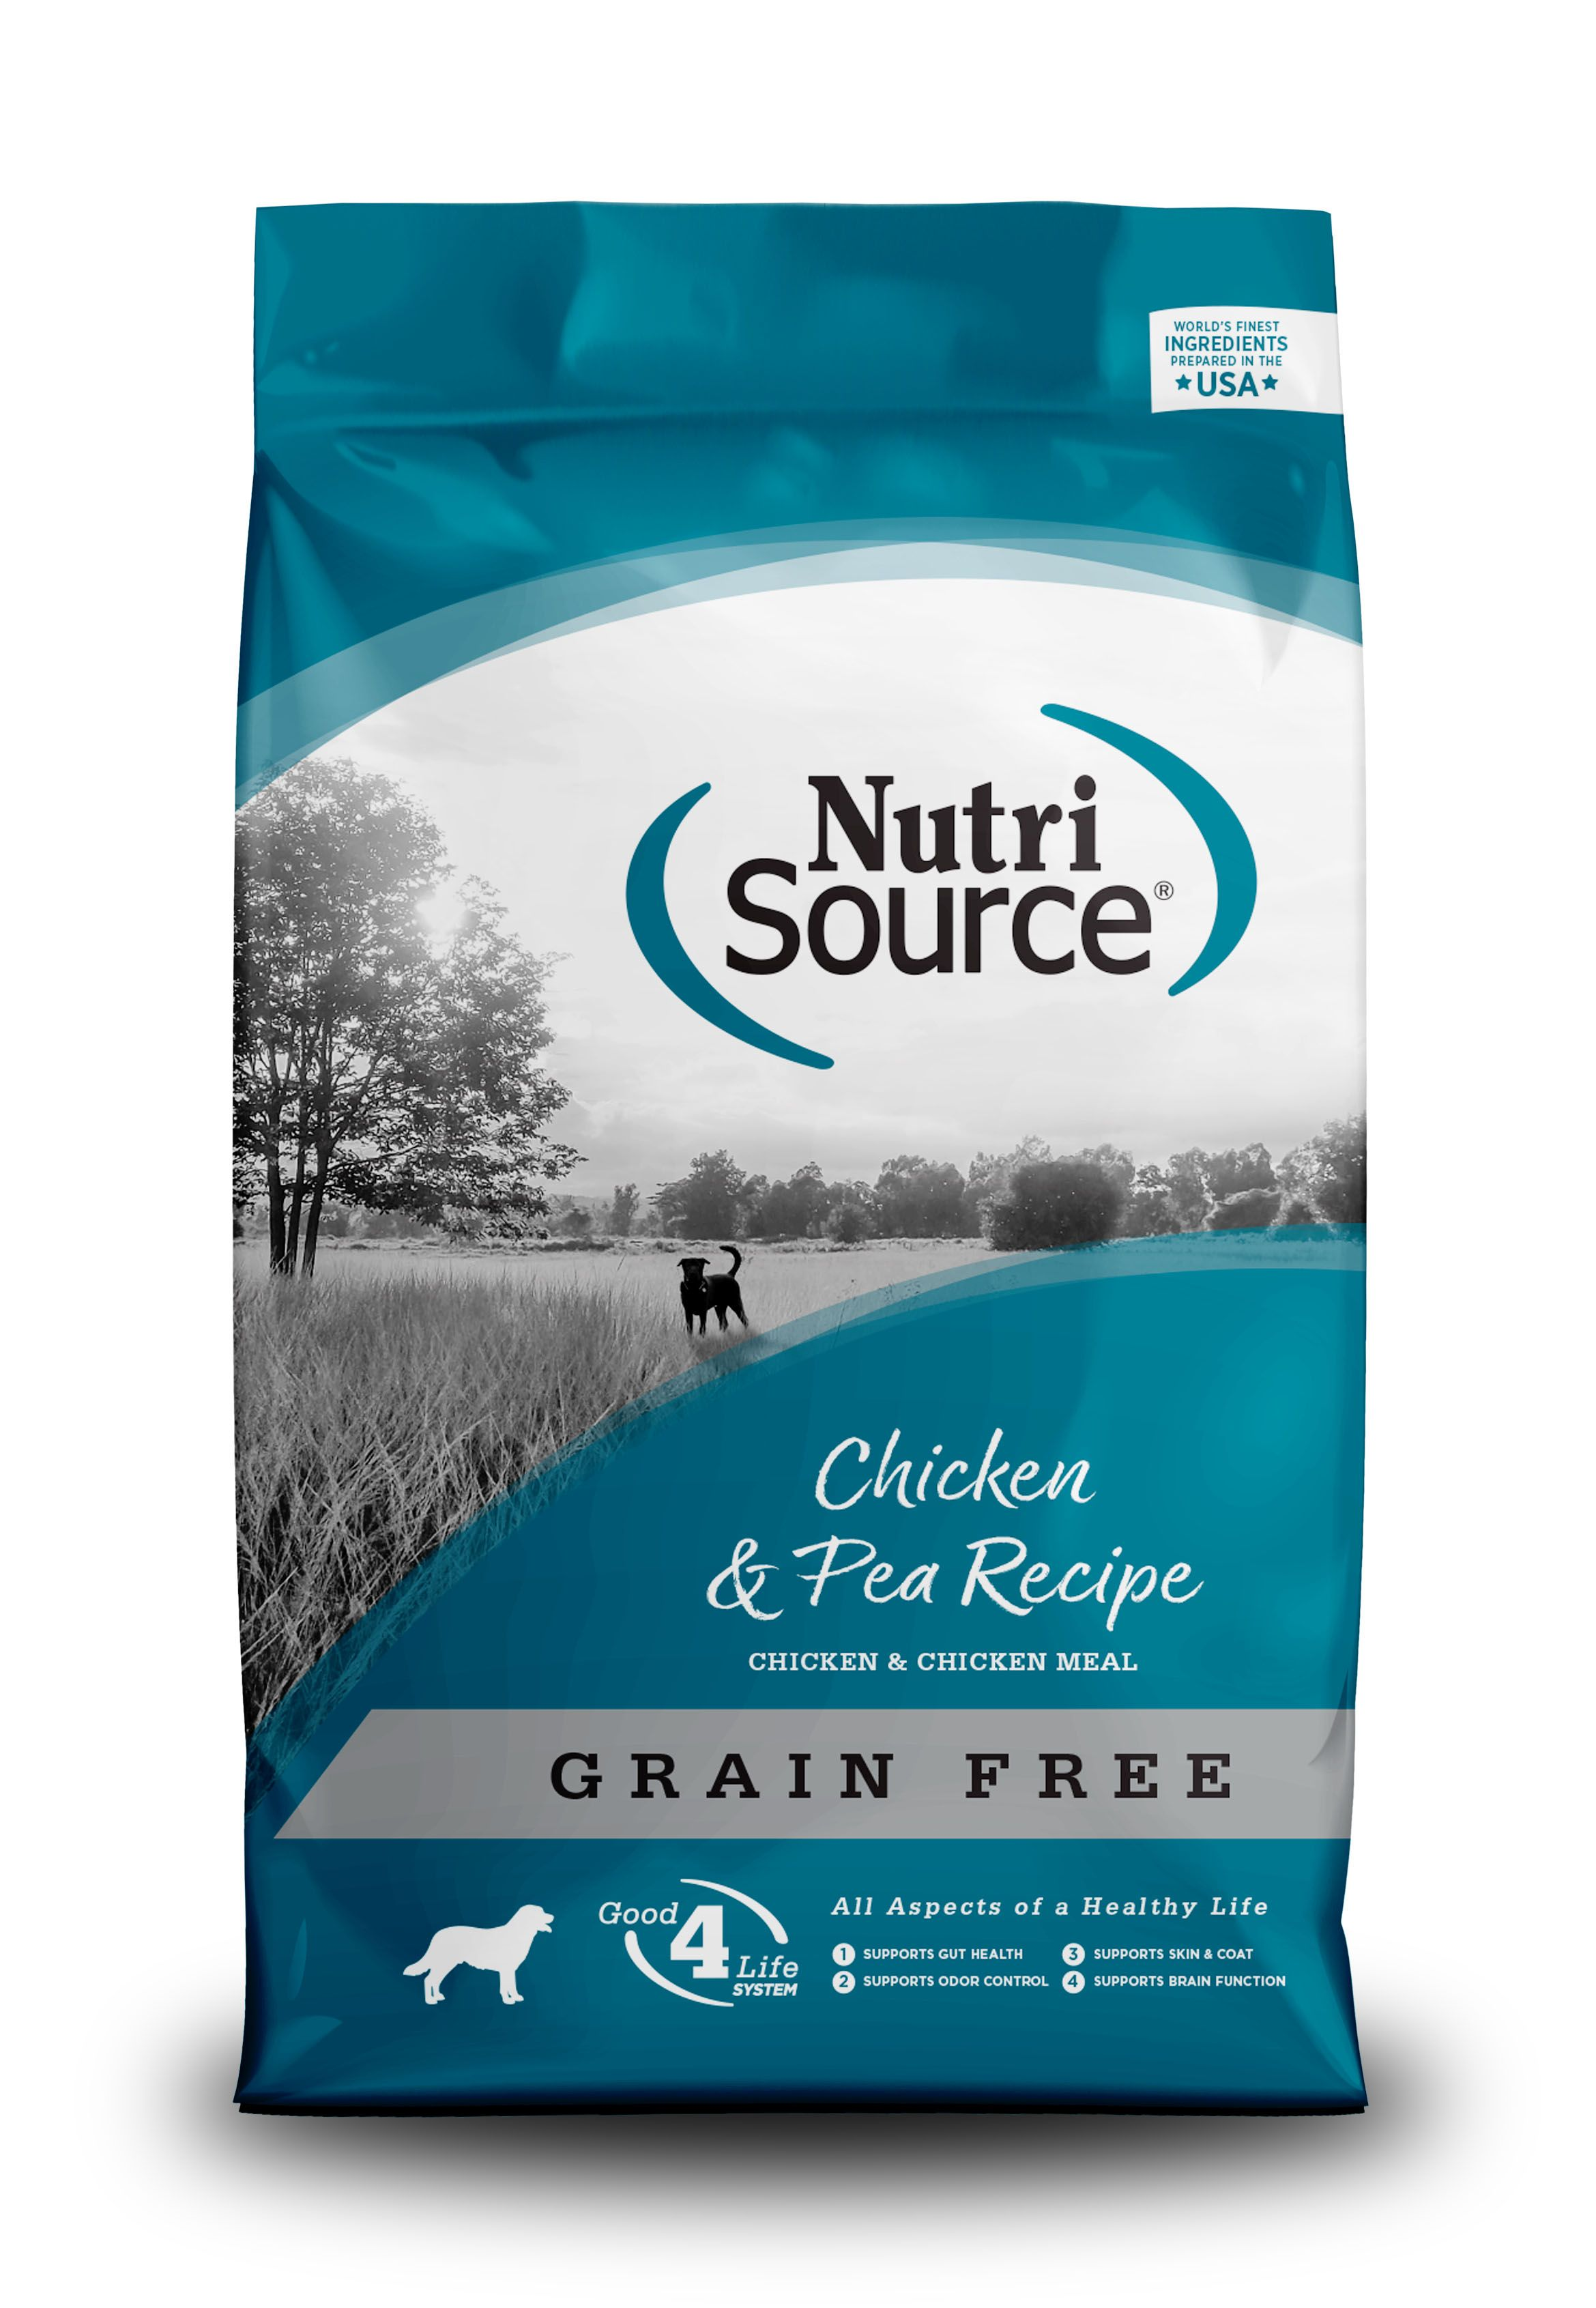 NutriSource Grain Free Chicken & Pea Dry Dog Food, 5-lb